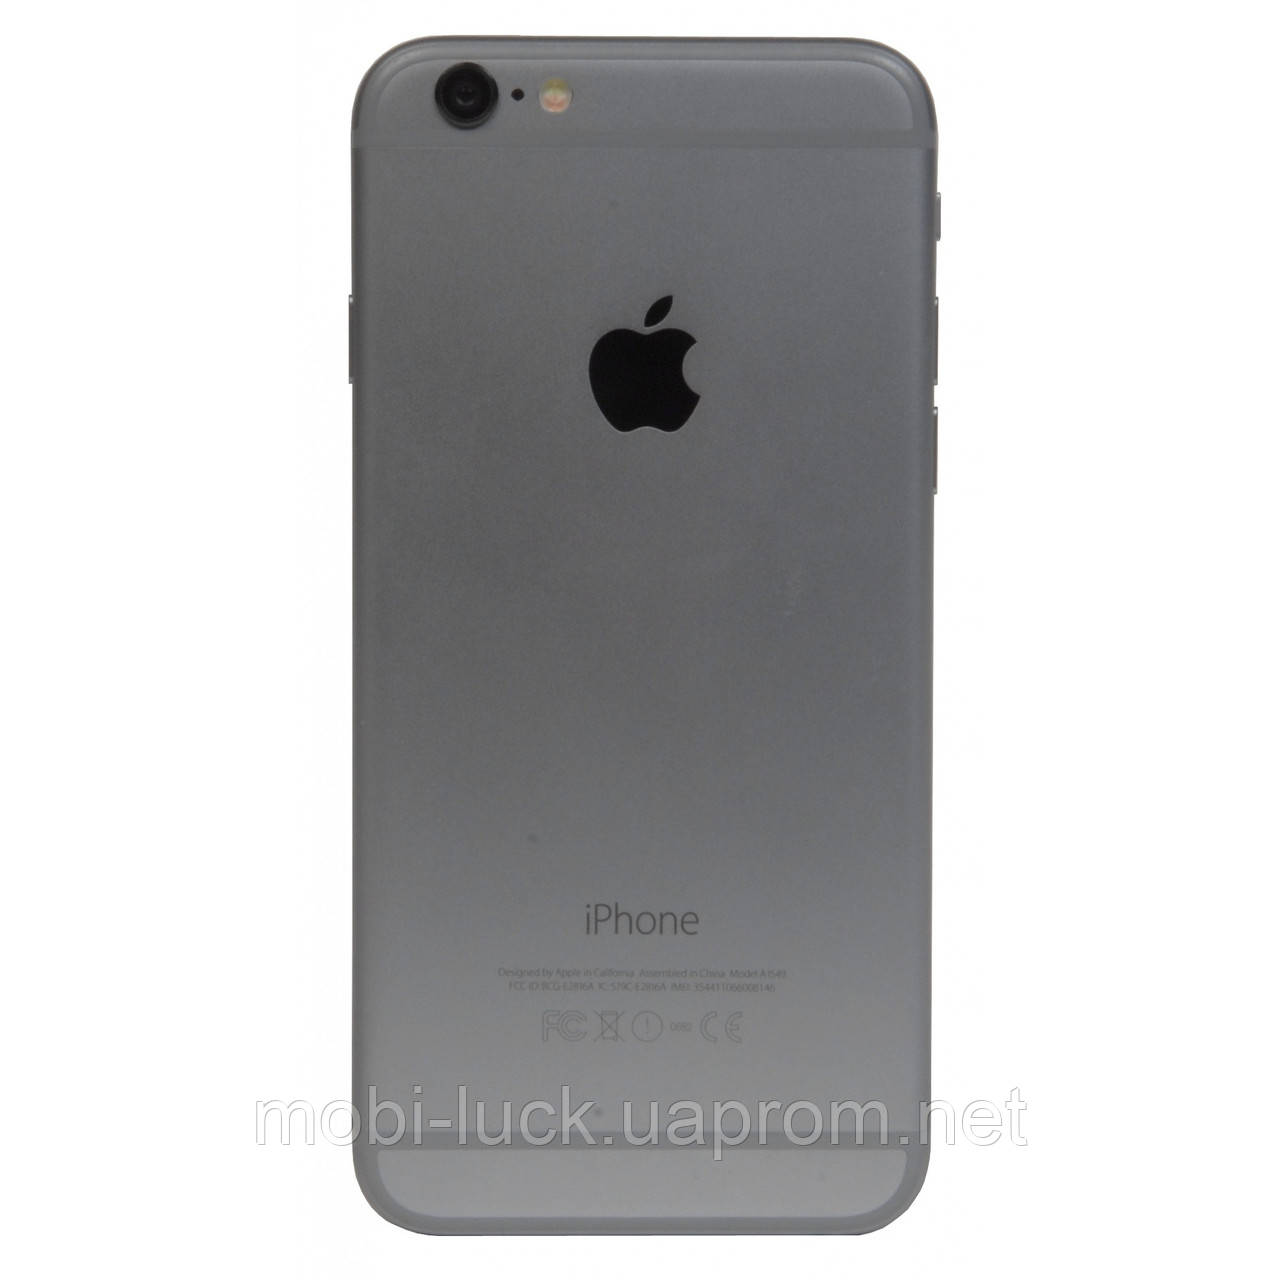 Смартфон Apple iPhone 6 16GB Space Gray Grade A Refurbished